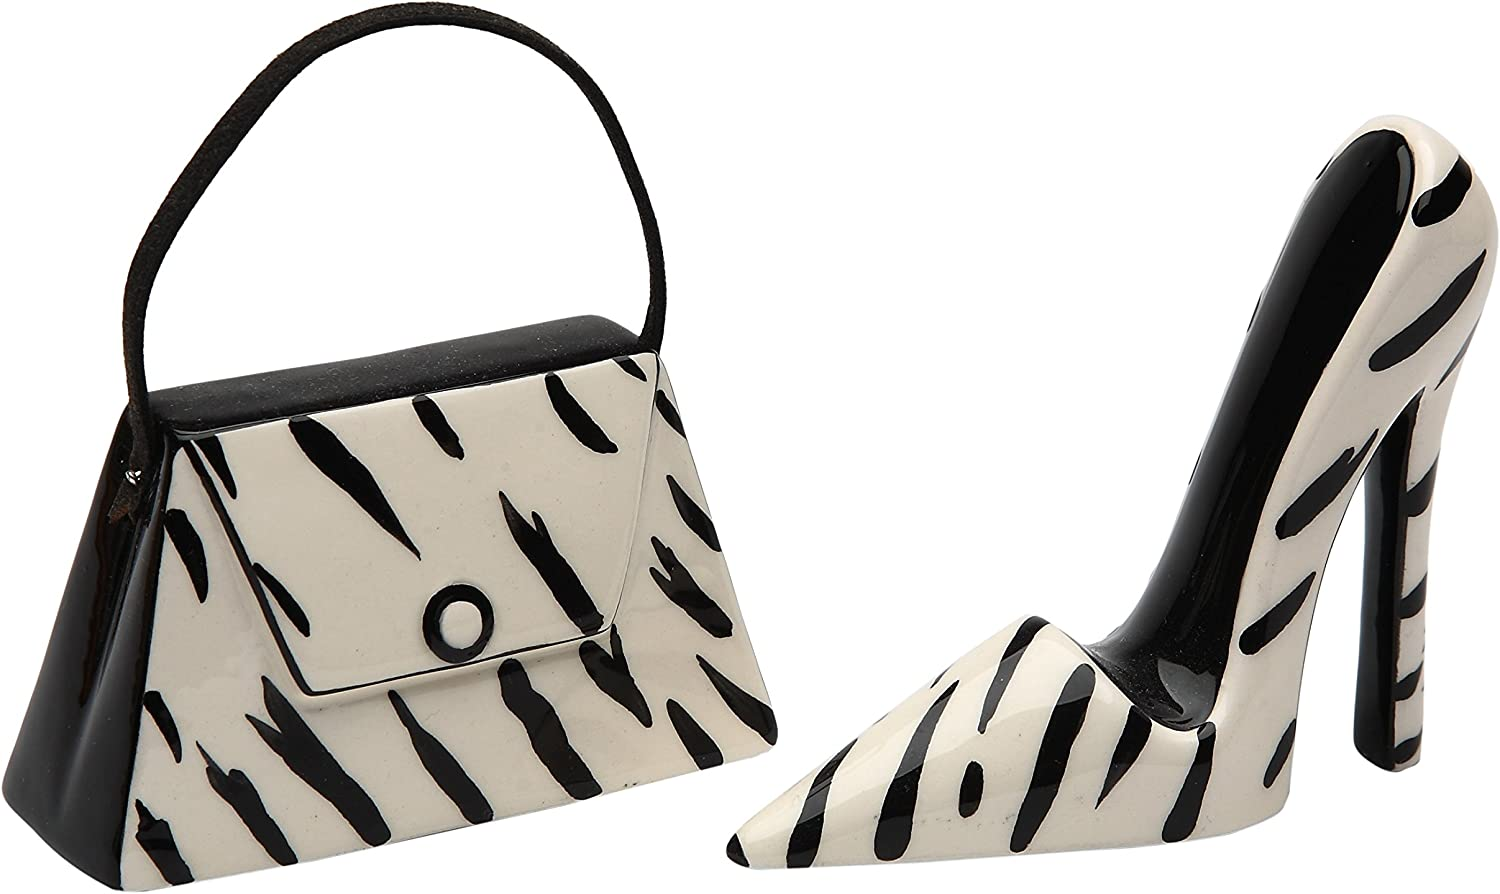 StealStreet SS-CG-62807, 3.5 Inch Black and White Zebra Print Purse and Heel Salt and Pepper